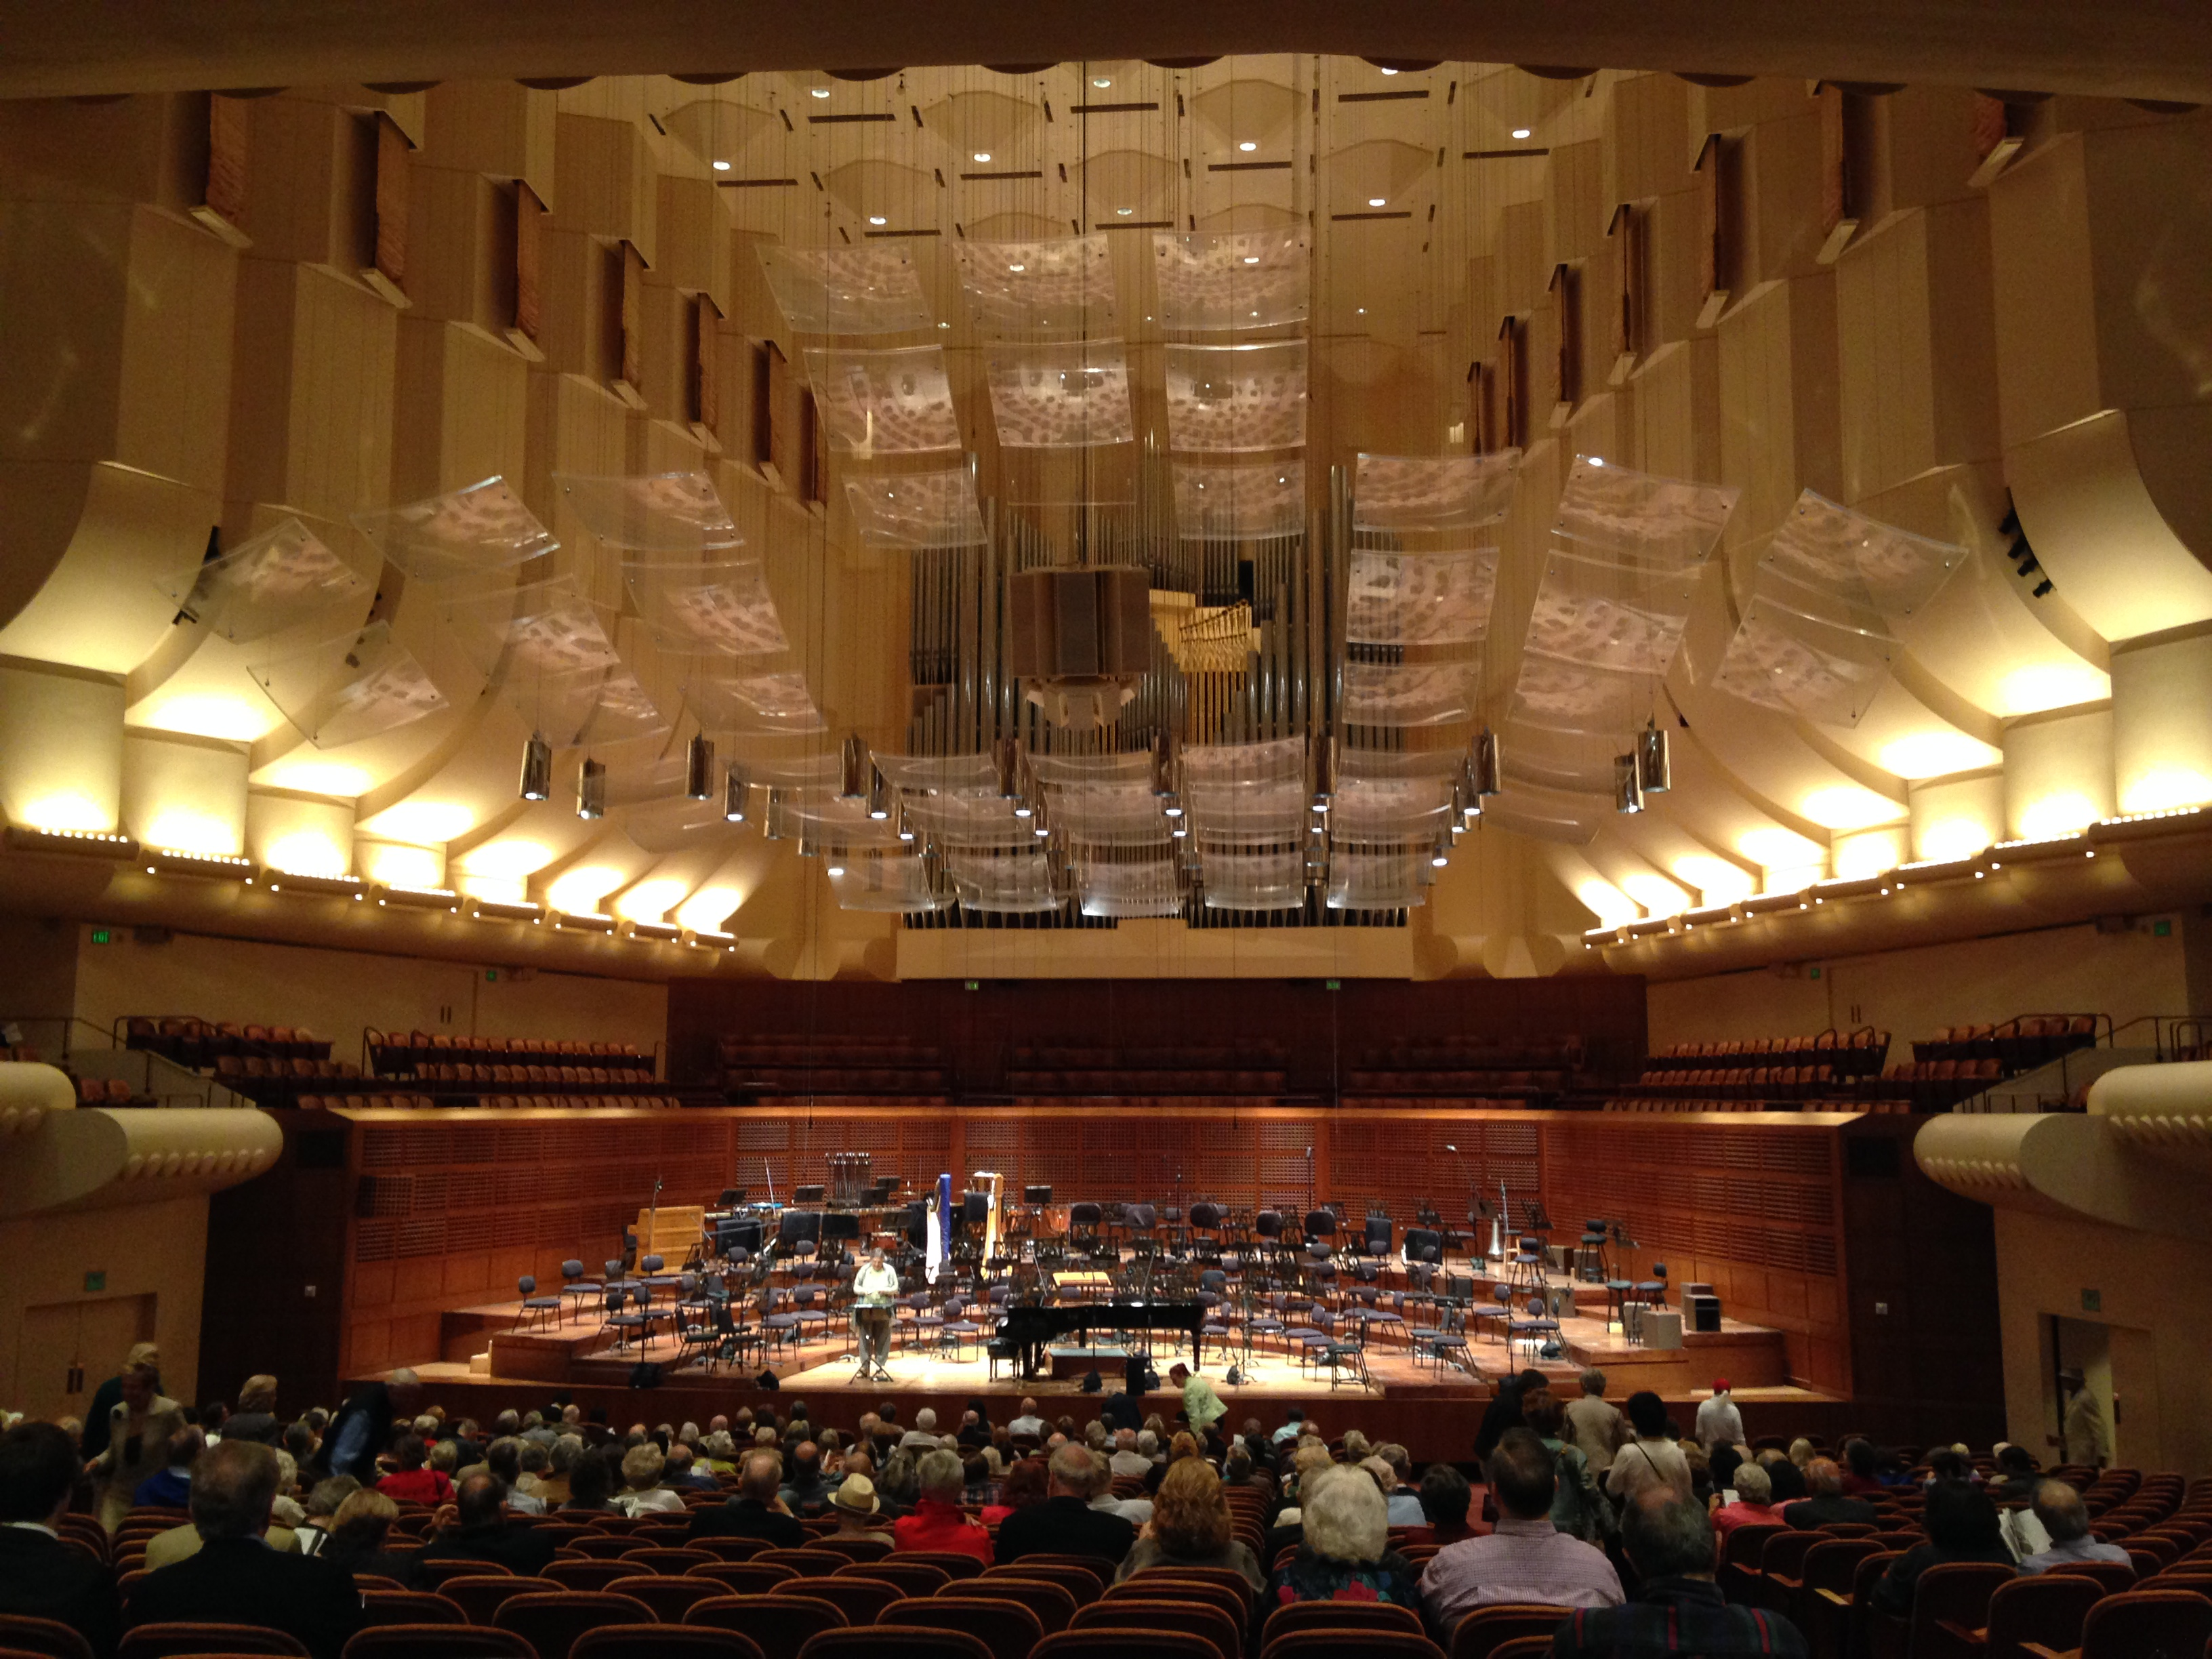 My afternoon at the San Francisco Symphony with Yuja Wang, Pianist ...